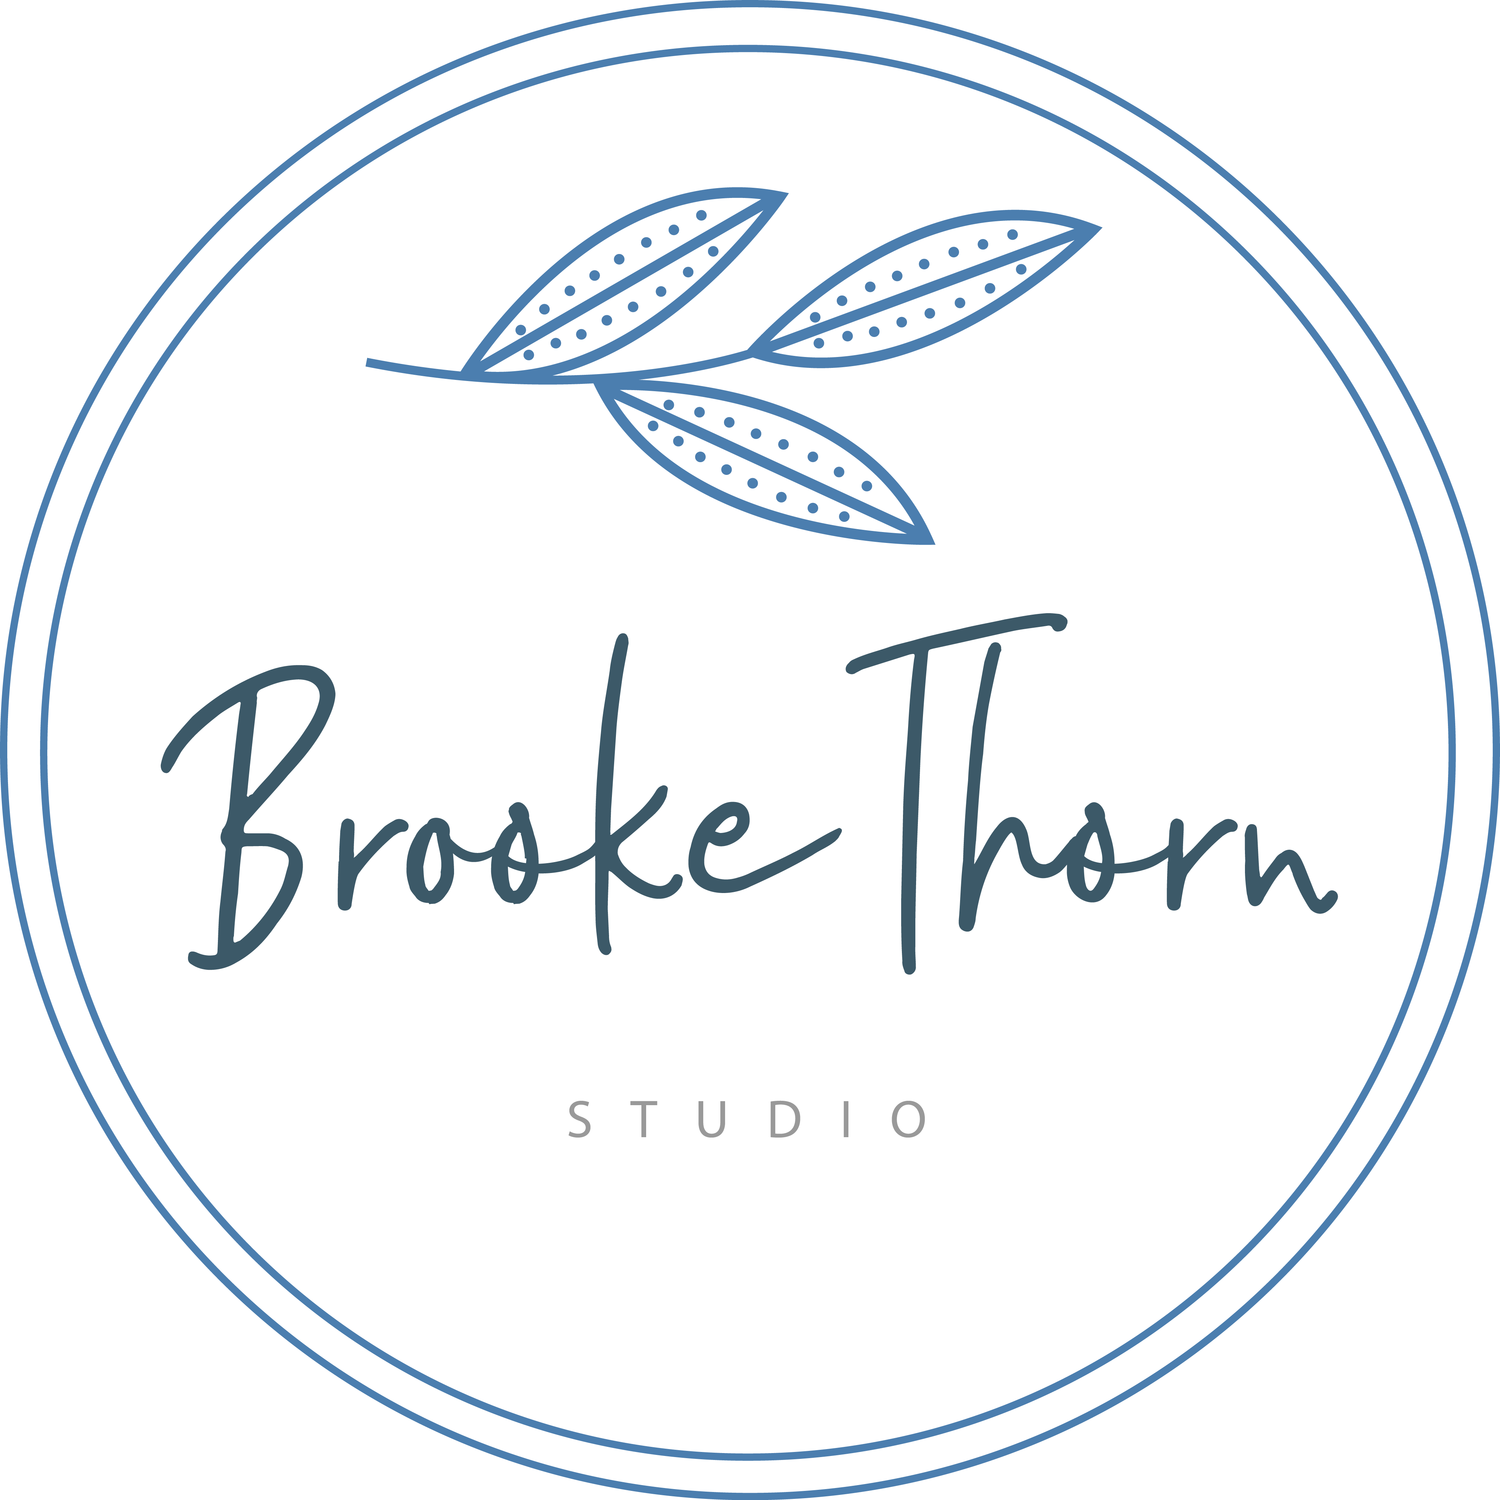 Brooke Thorn